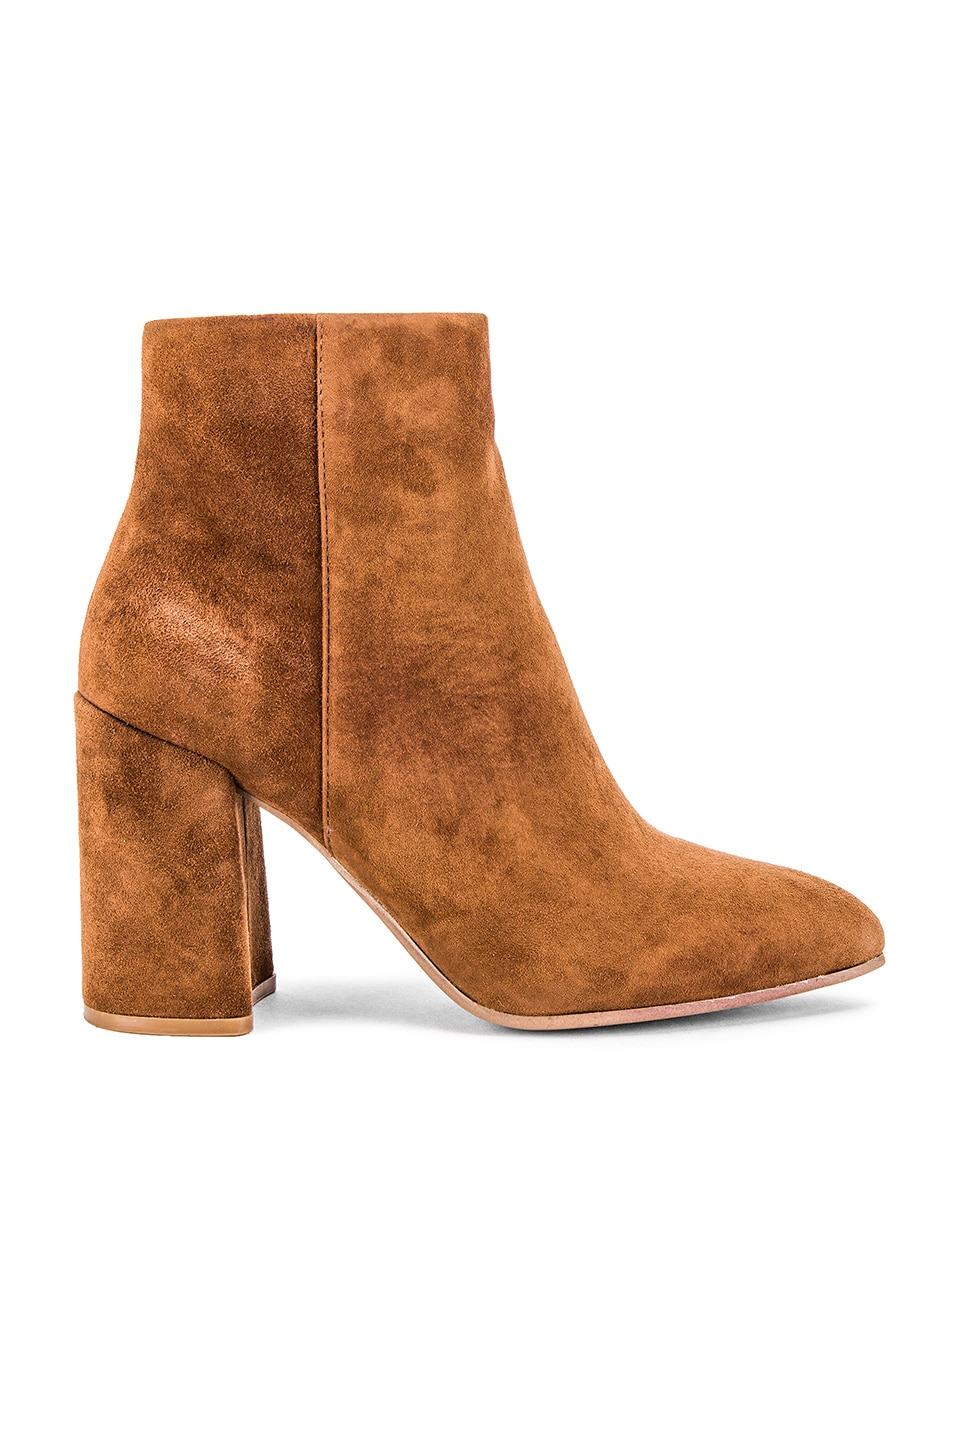 Steve Madden Therese Bootie in Brown Suede